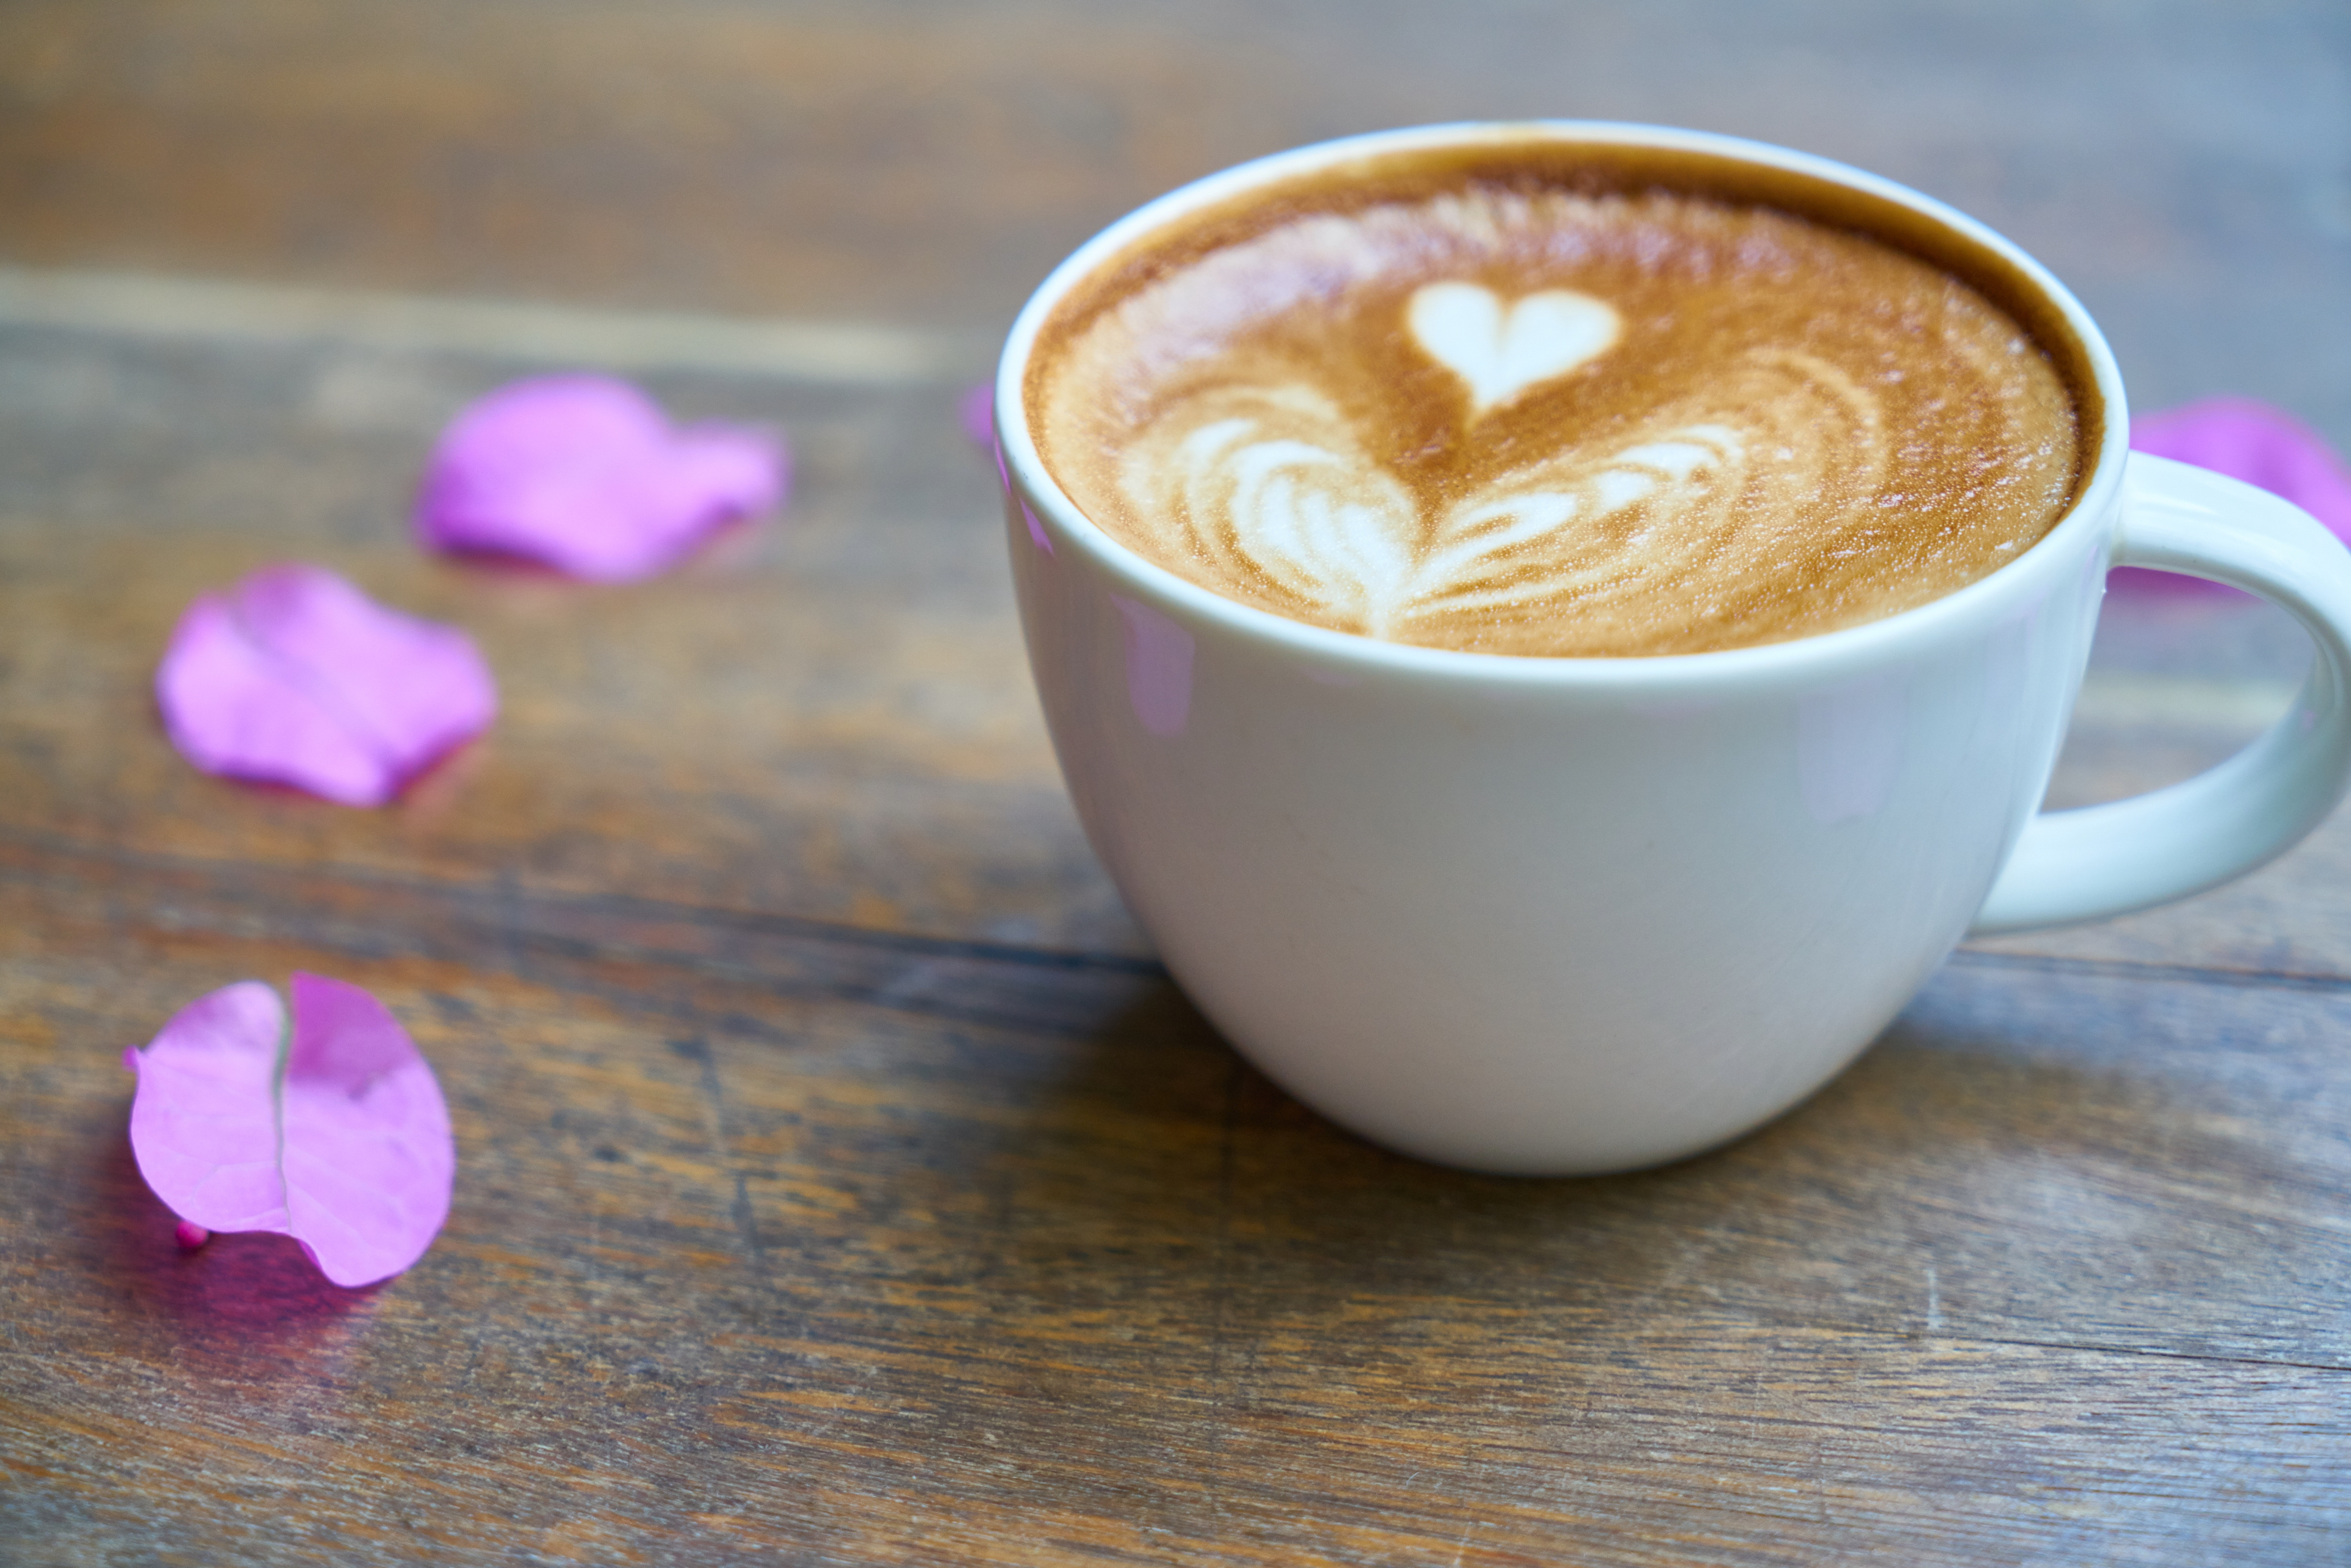 White Ceramic Tea Cup With Coffee Inside 183 Free Stock Photo